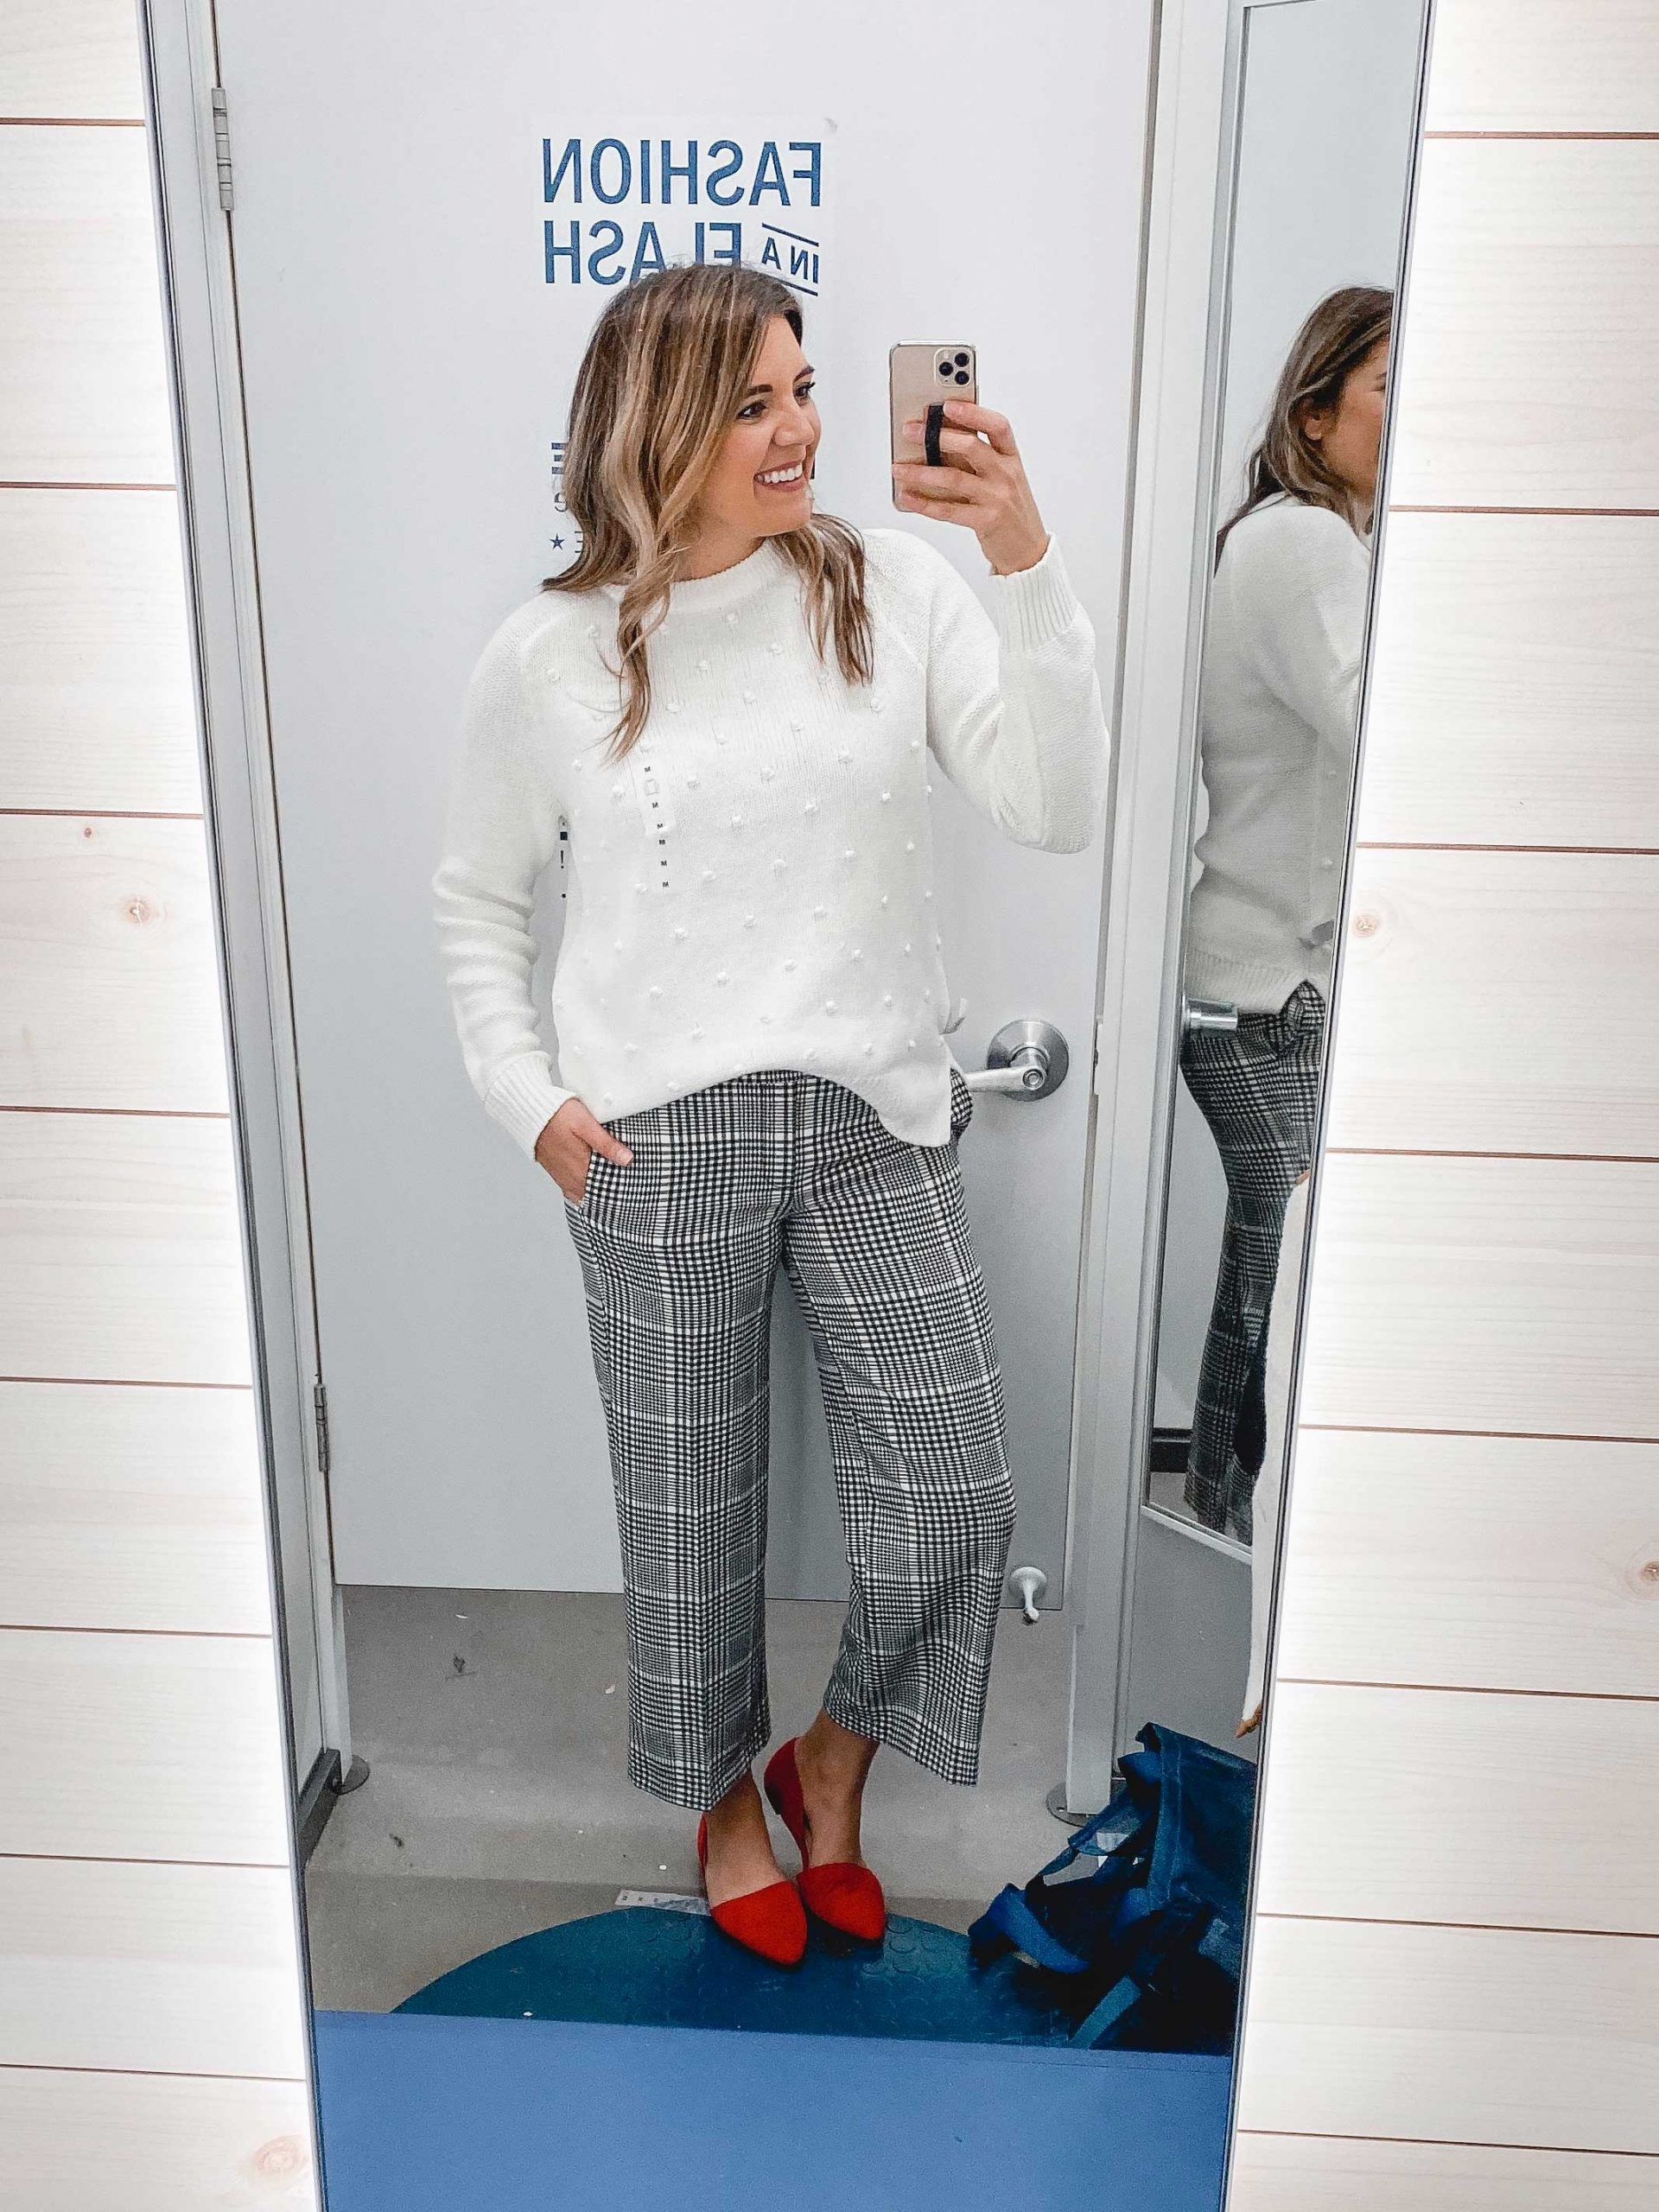 Virginia blogger, Lauren Dix, shares over 20 Old Navy holiday outfits and an Old Navy winter try on!